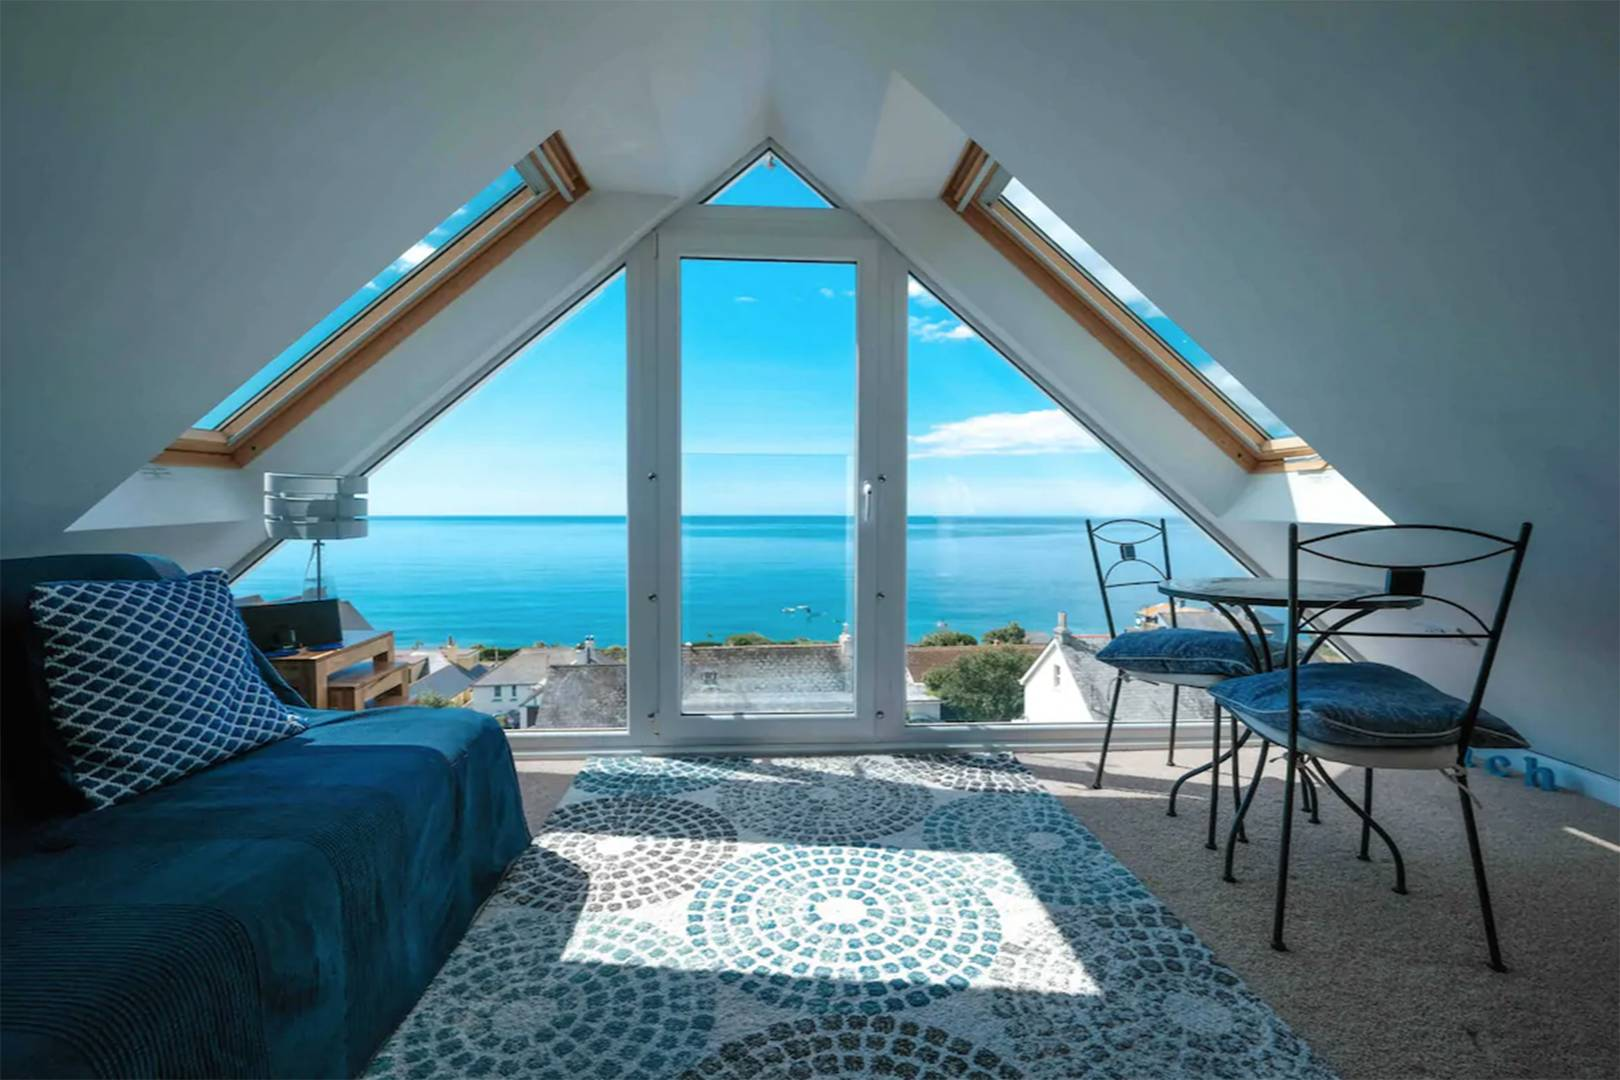 triangular-living-room-with-views-out-to-blue-sea-in-coastal-studio-loft-apartment-in-downderry